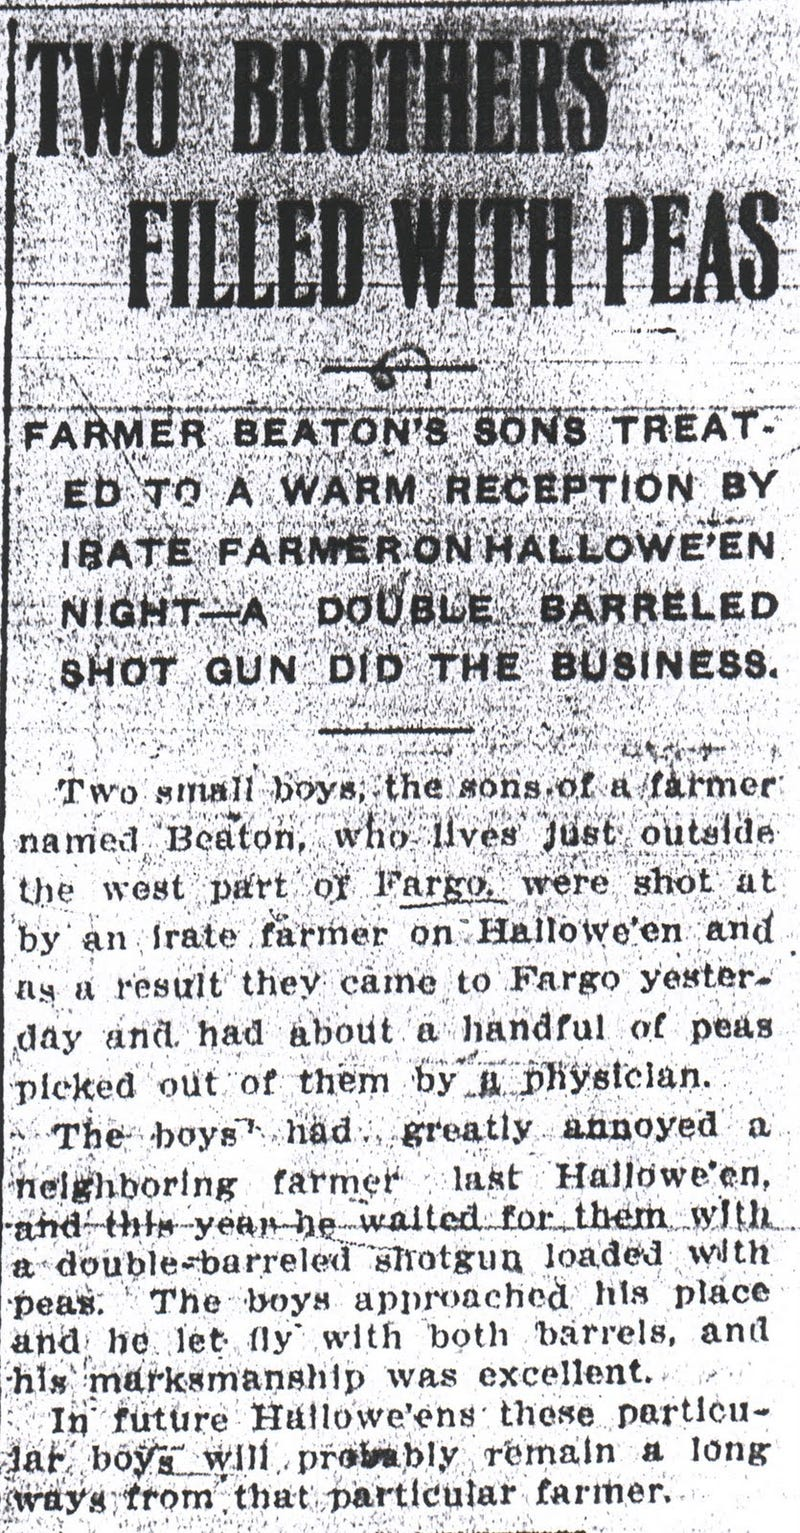 This is history's greatest news article about someone shooting a shotgun full of peas